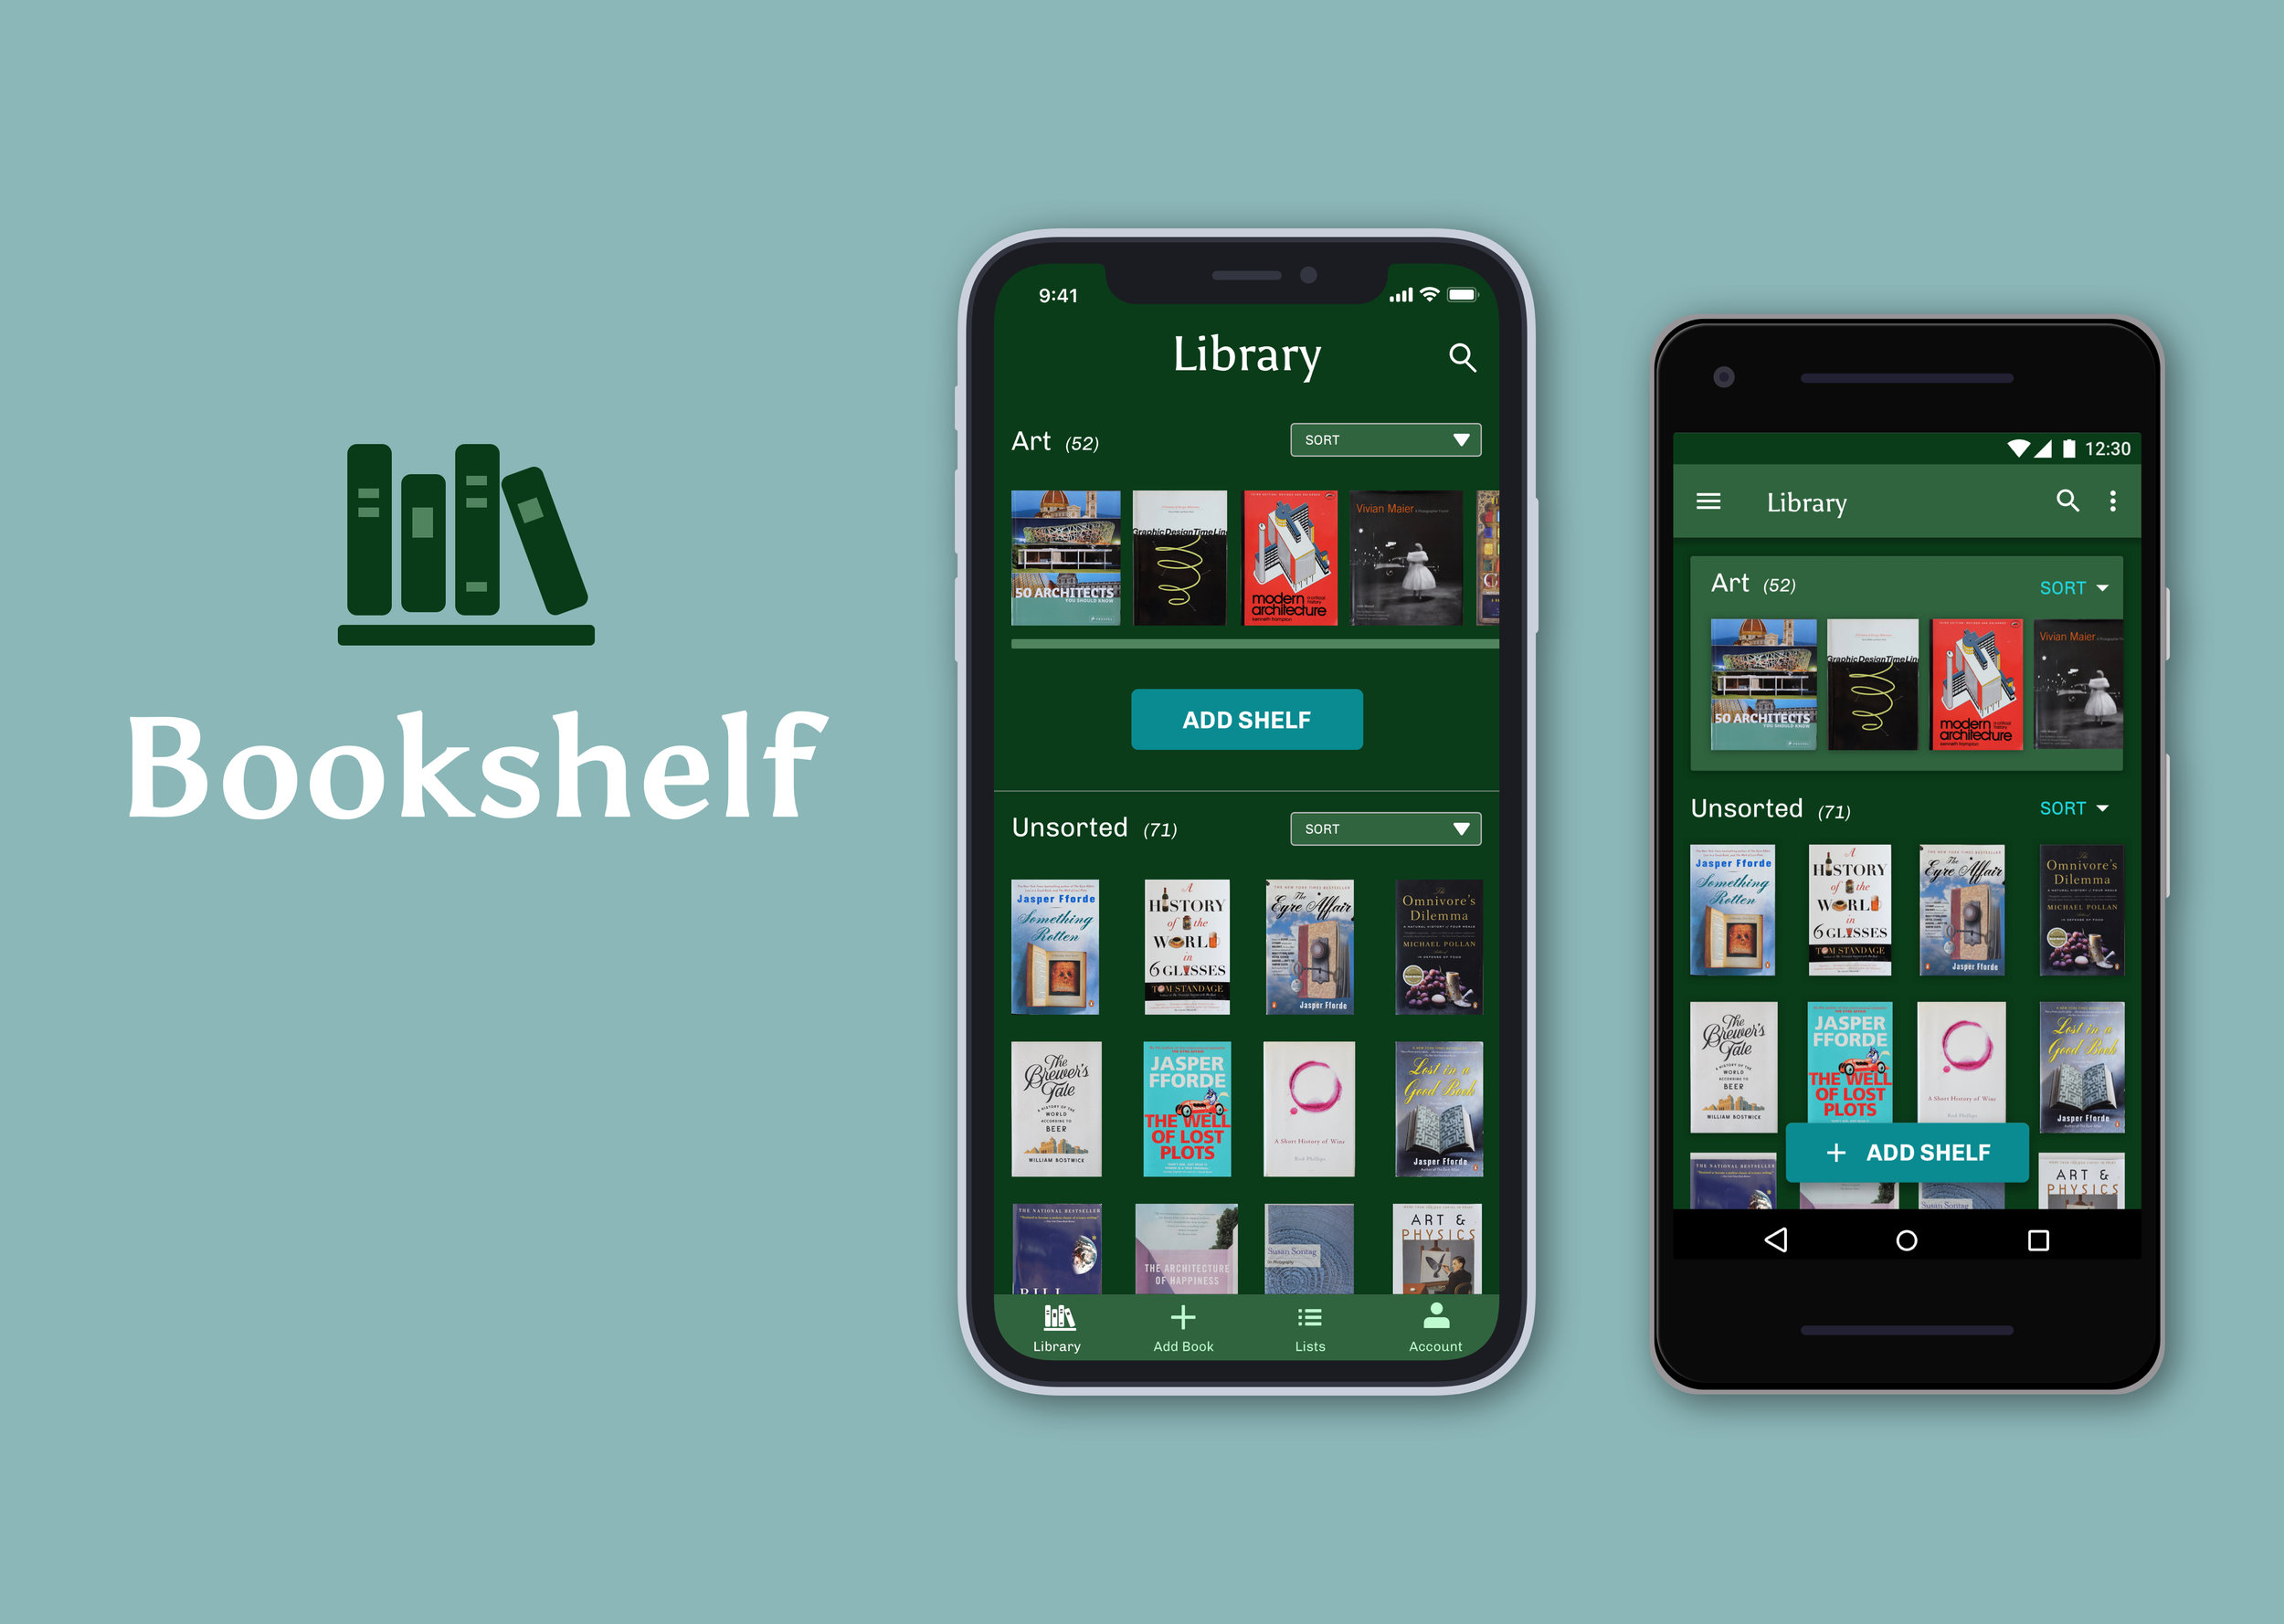 (top) iOS screens for log in, library, shelf, add book, book detail, reading list; (bottom) Android screens for log in, library, shelf, add book, book detail, reading list